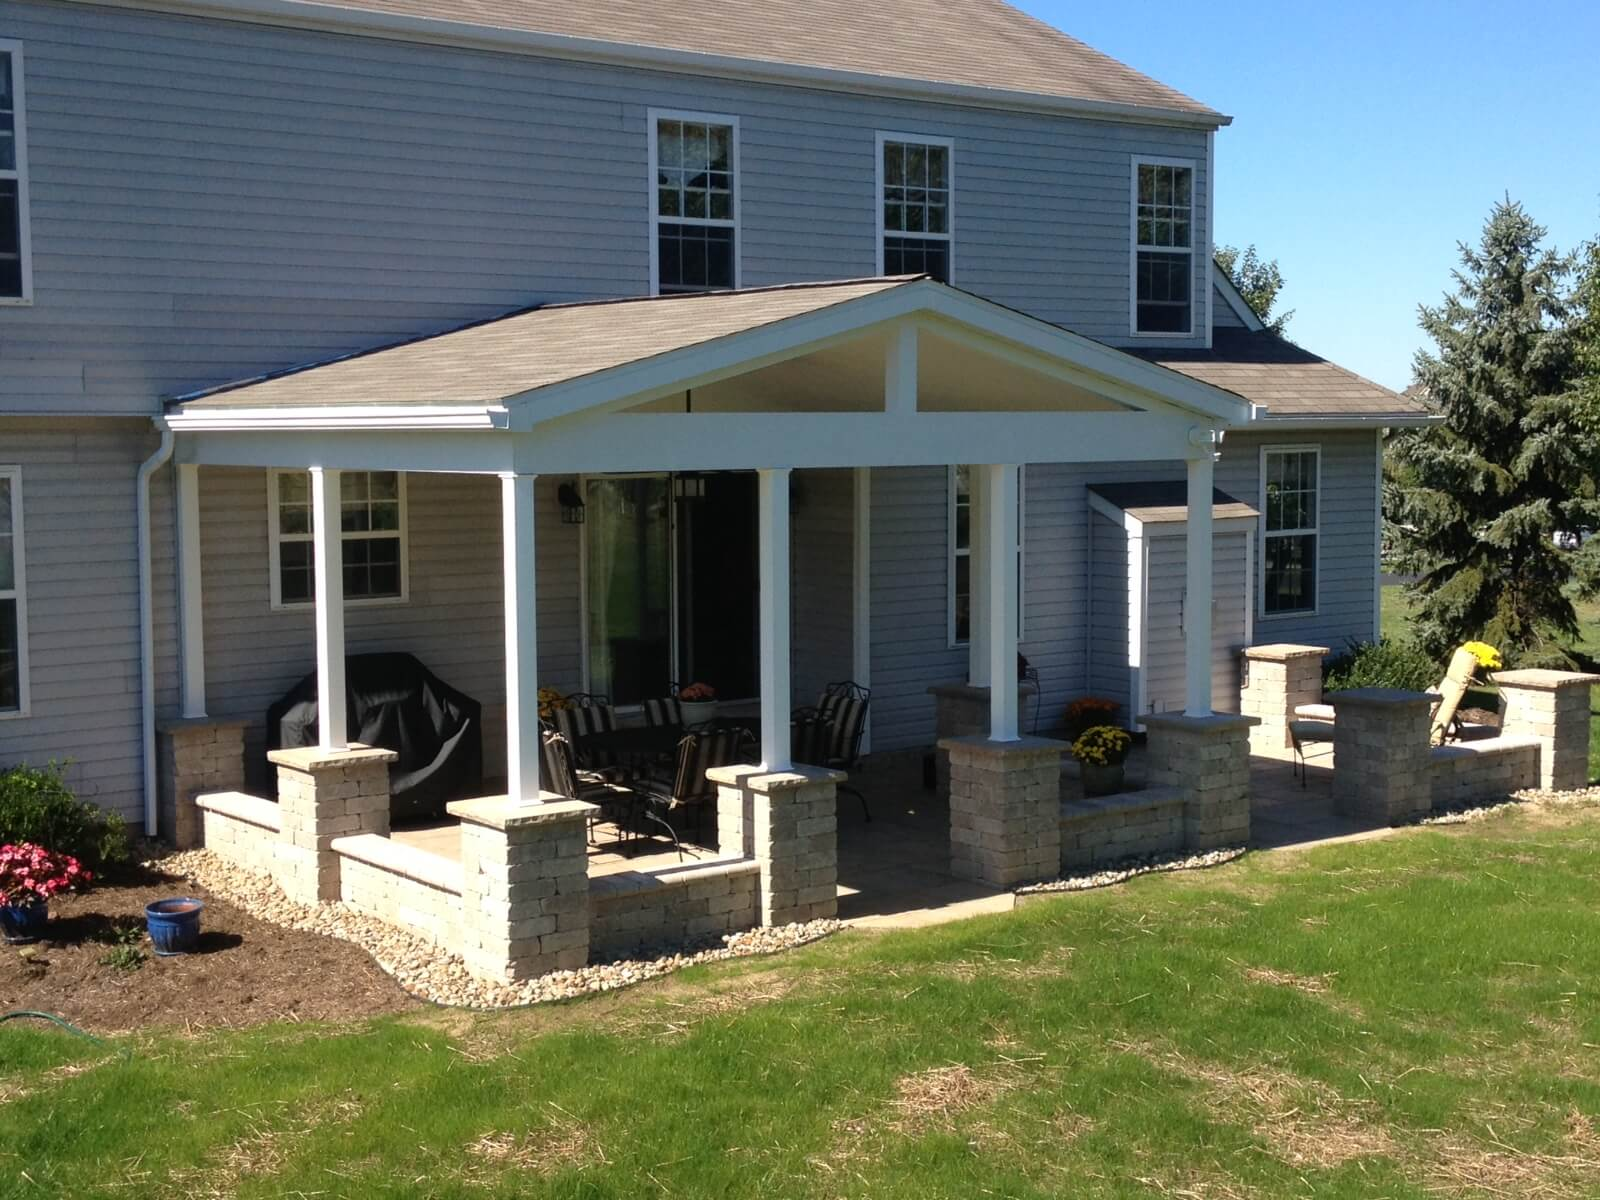 Custom open porch with stone columns